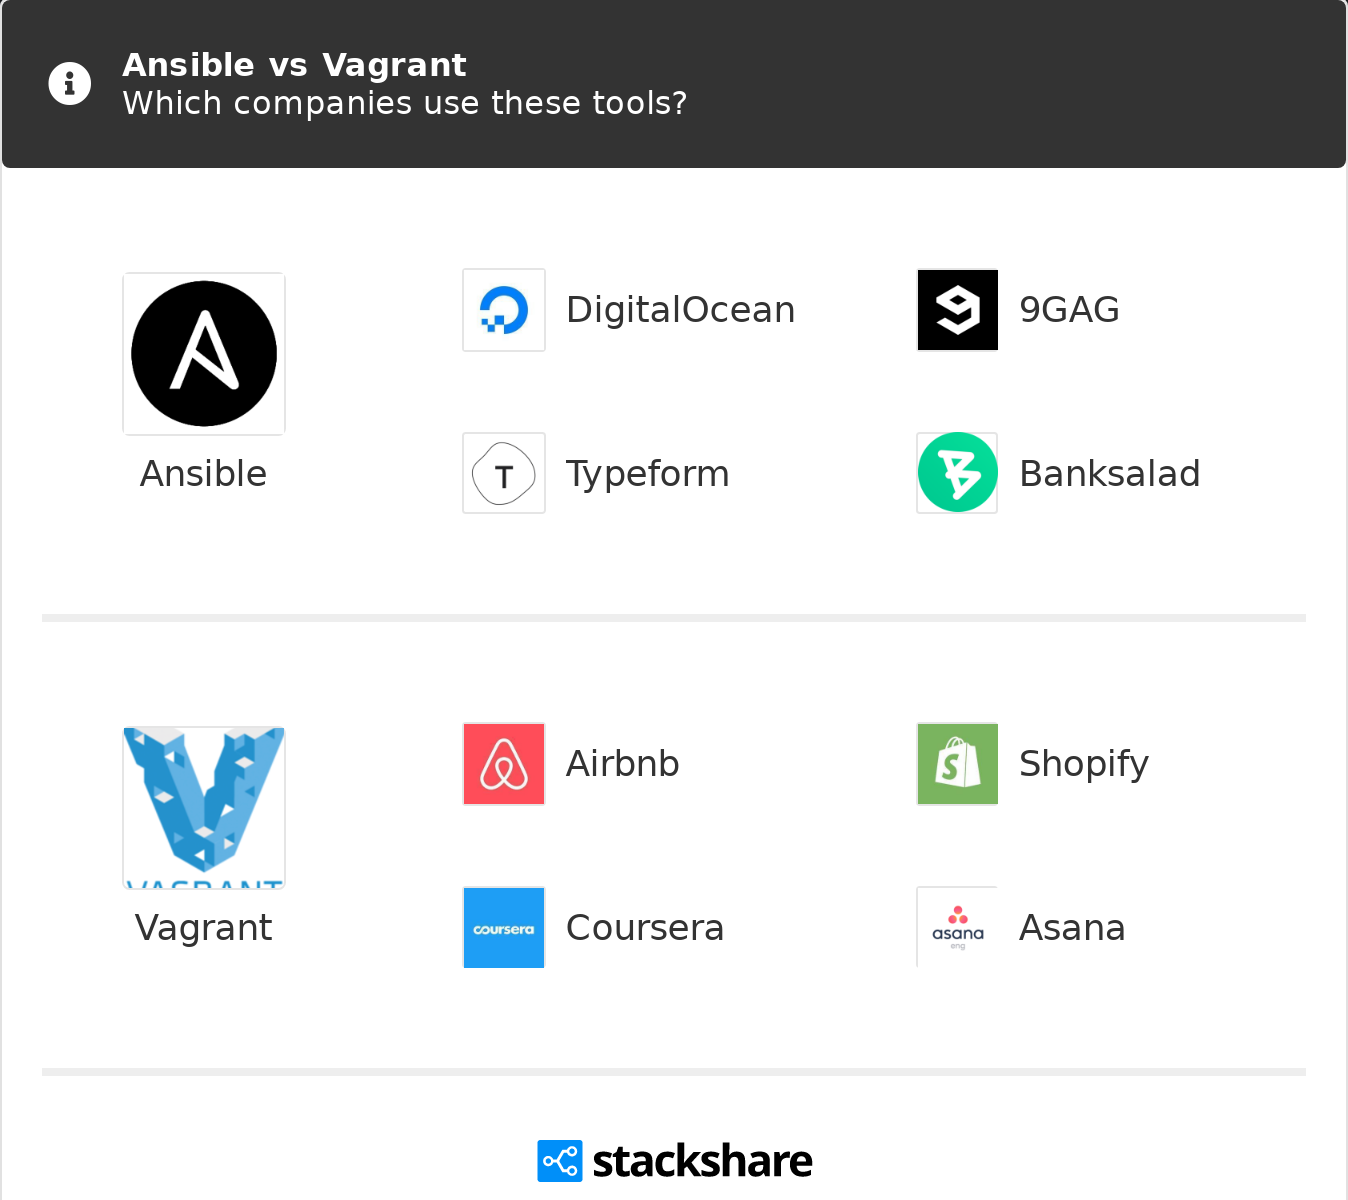 Ansible vs Vagrant | What are the differences?